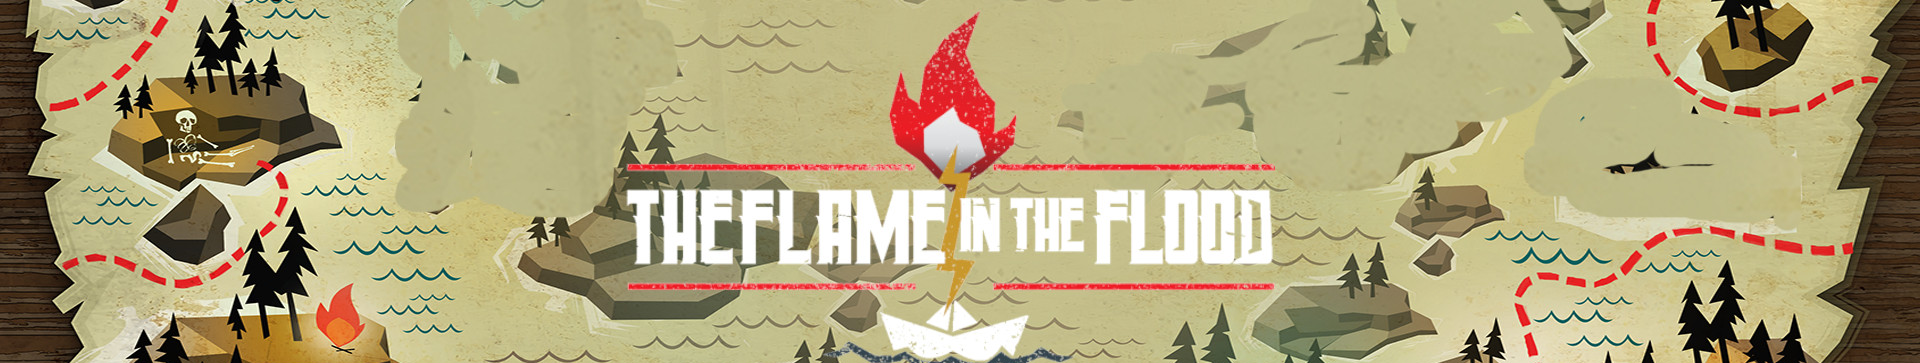 the-flame-in-the-flood-InnerPage-1920x363